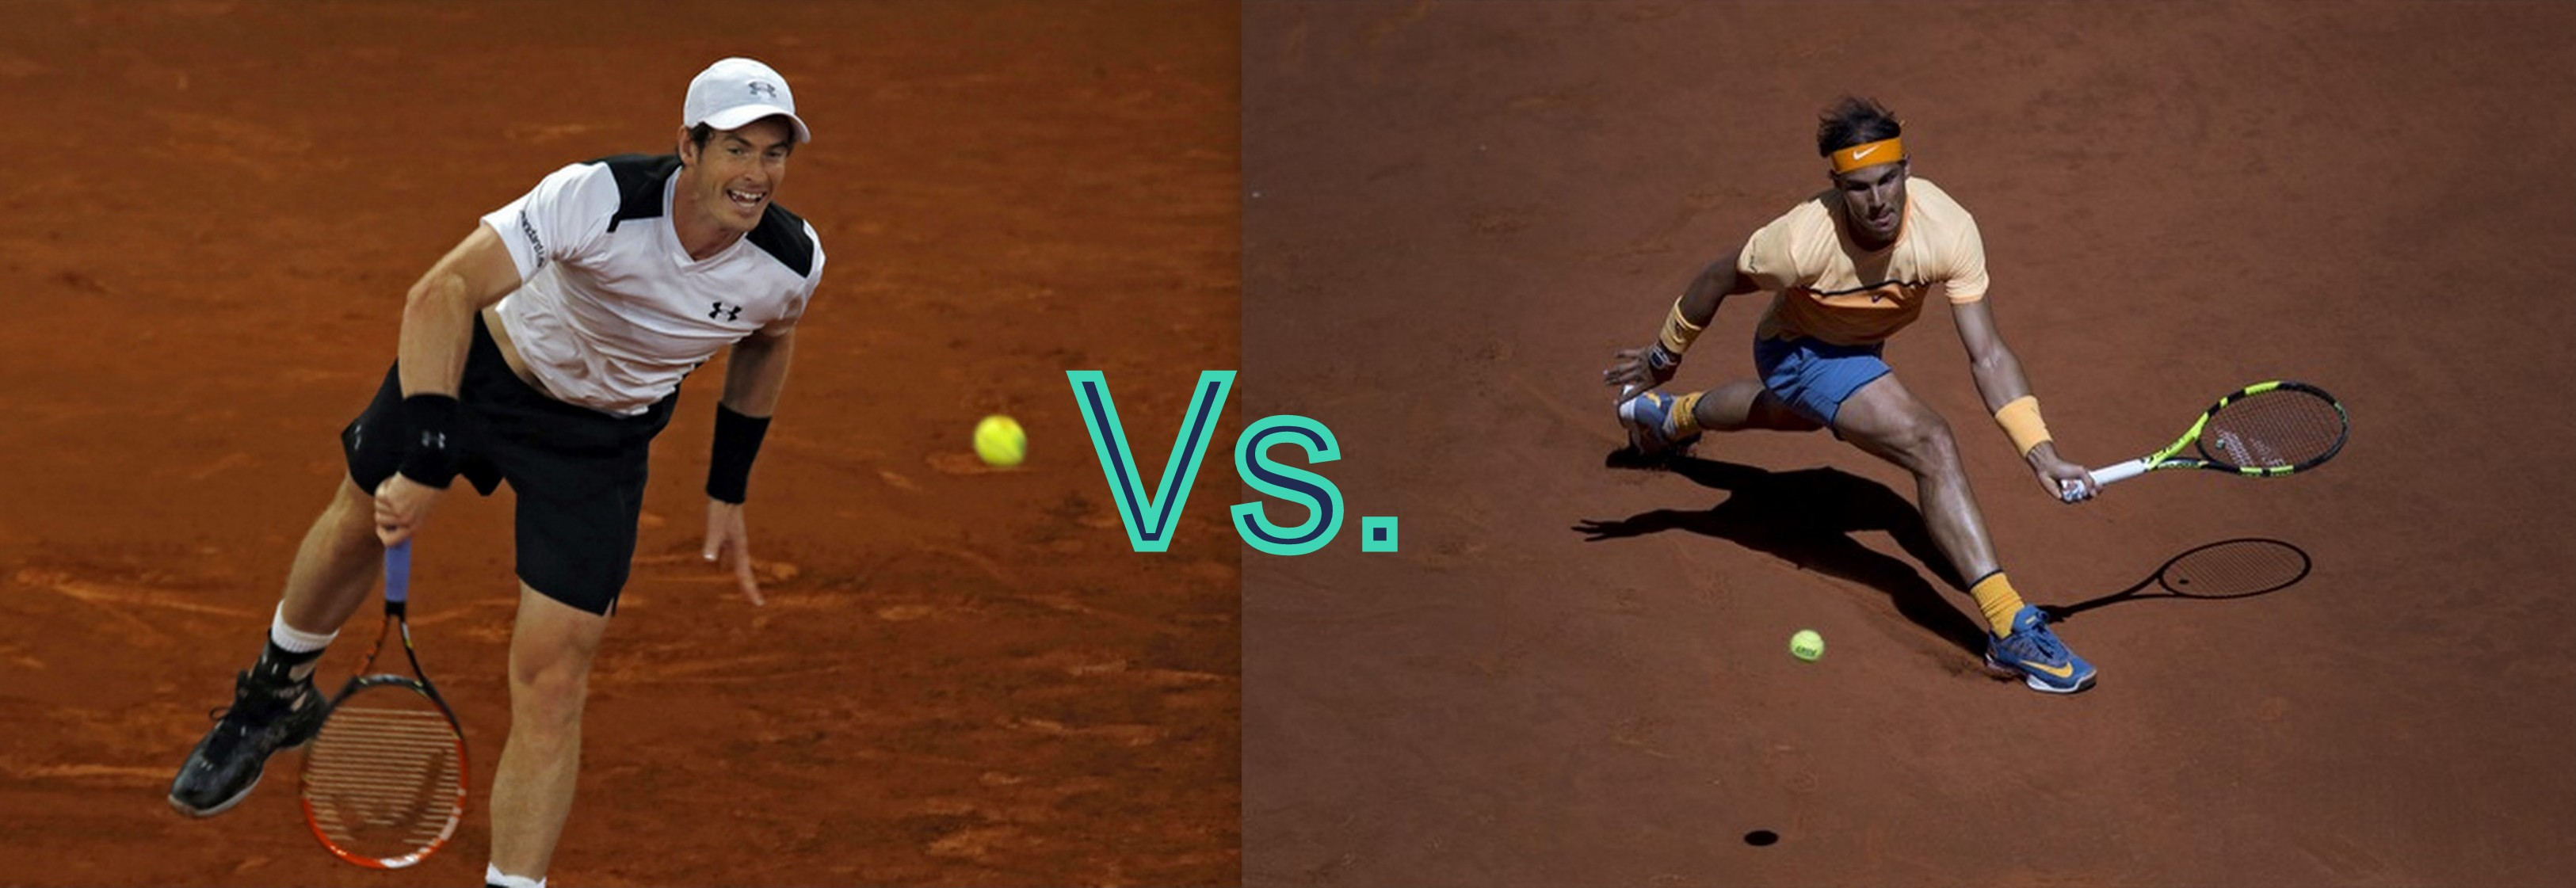 Murray vs. Nadal in Madrid semi-finals